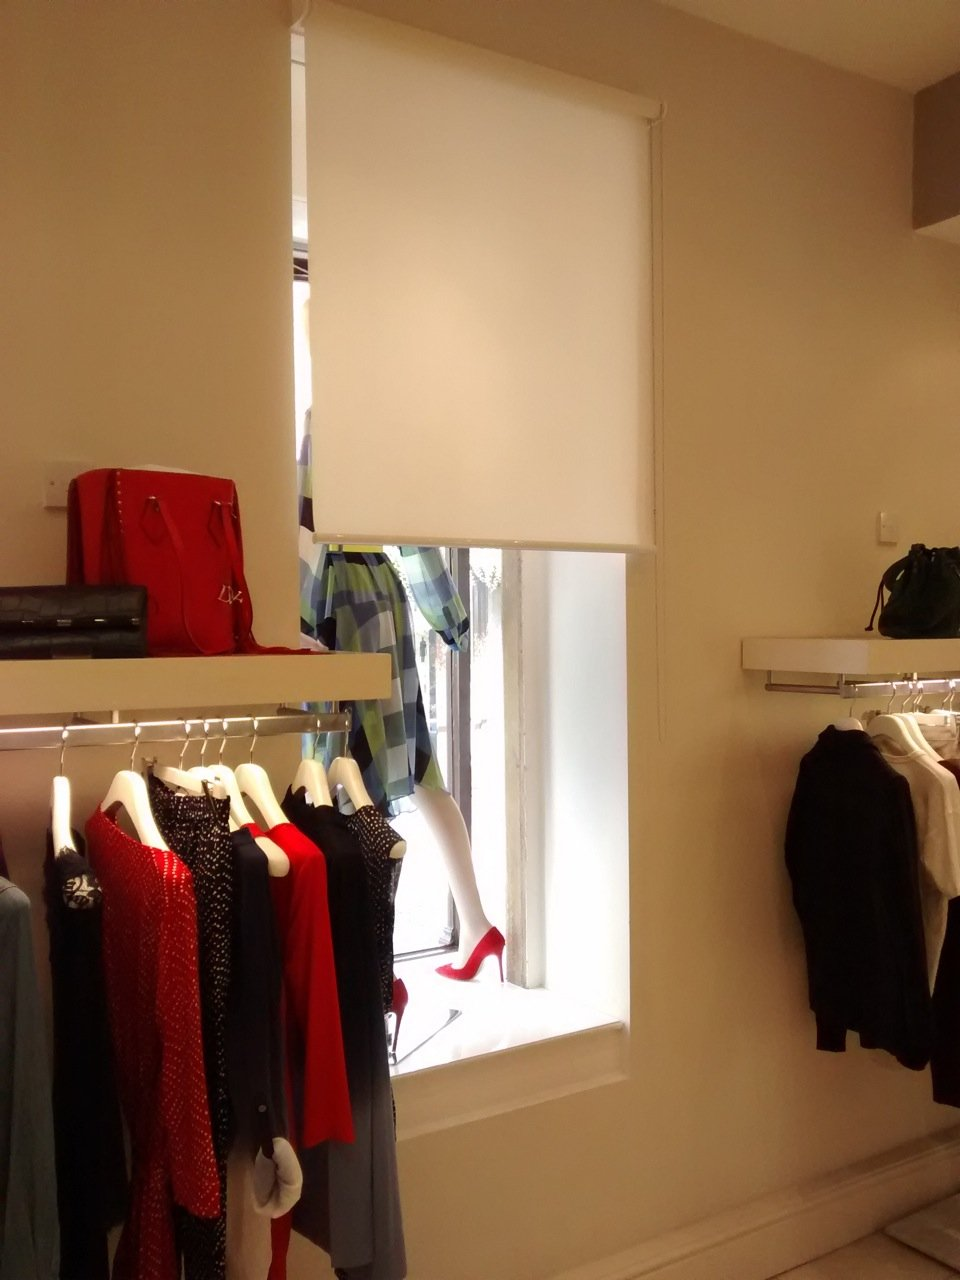 Basics roller blind for fashion retailer Matches Fashion